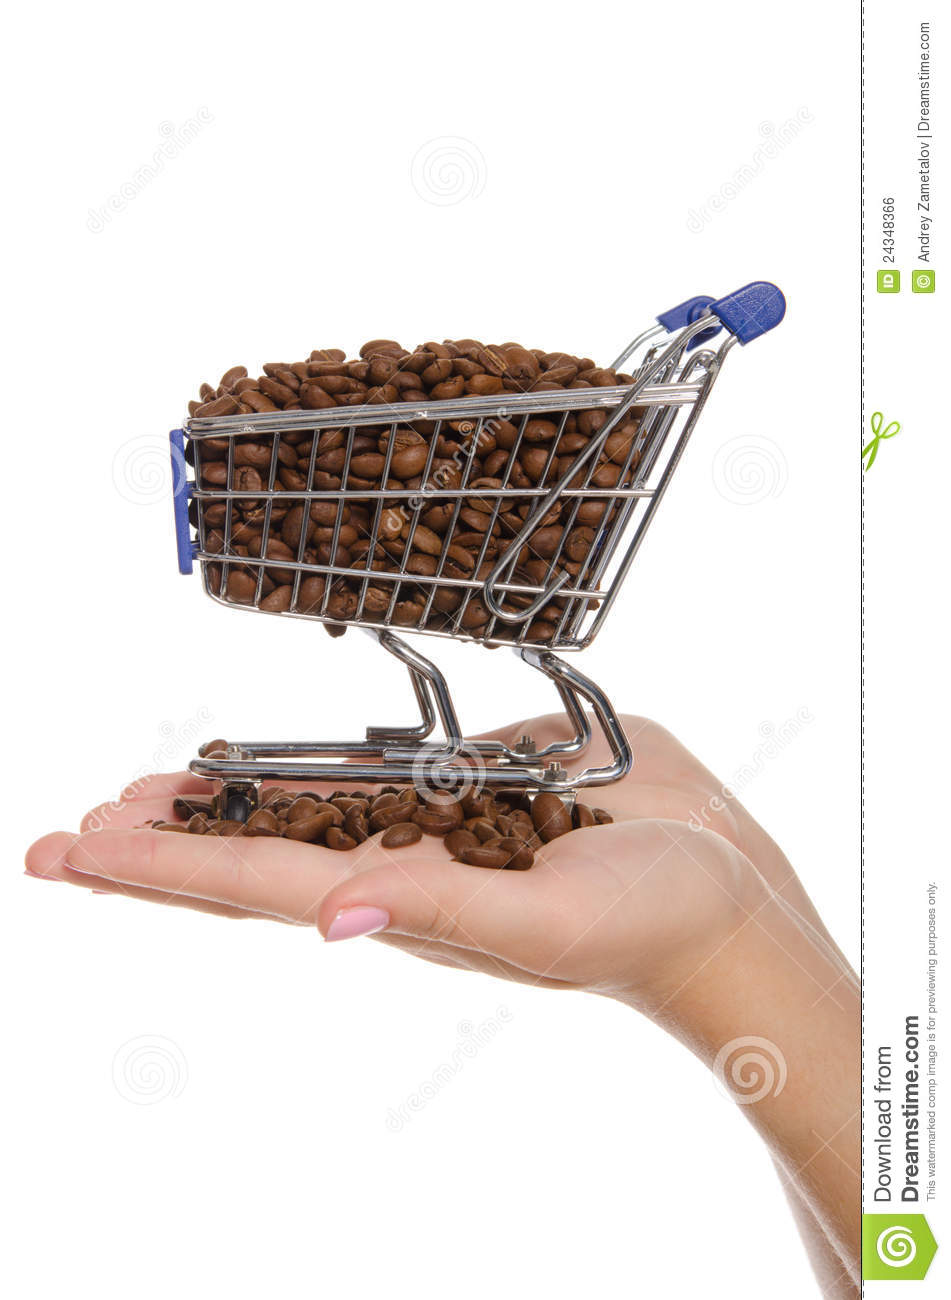 Coffee beans in shopping trolley on the palm